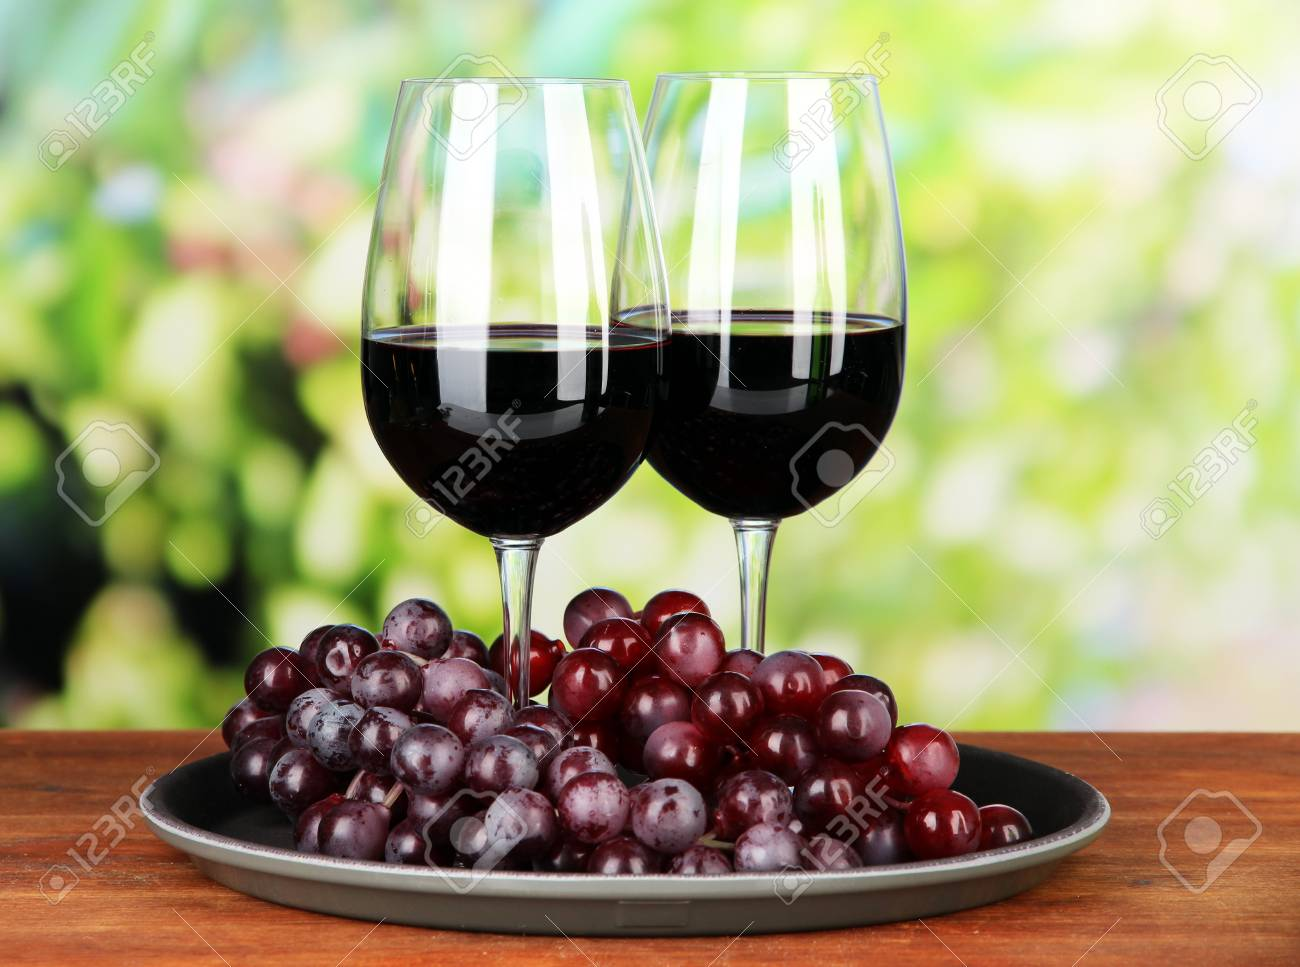 Ripe grapes and glasses of wine, on bright background Stock Photo - 21767865